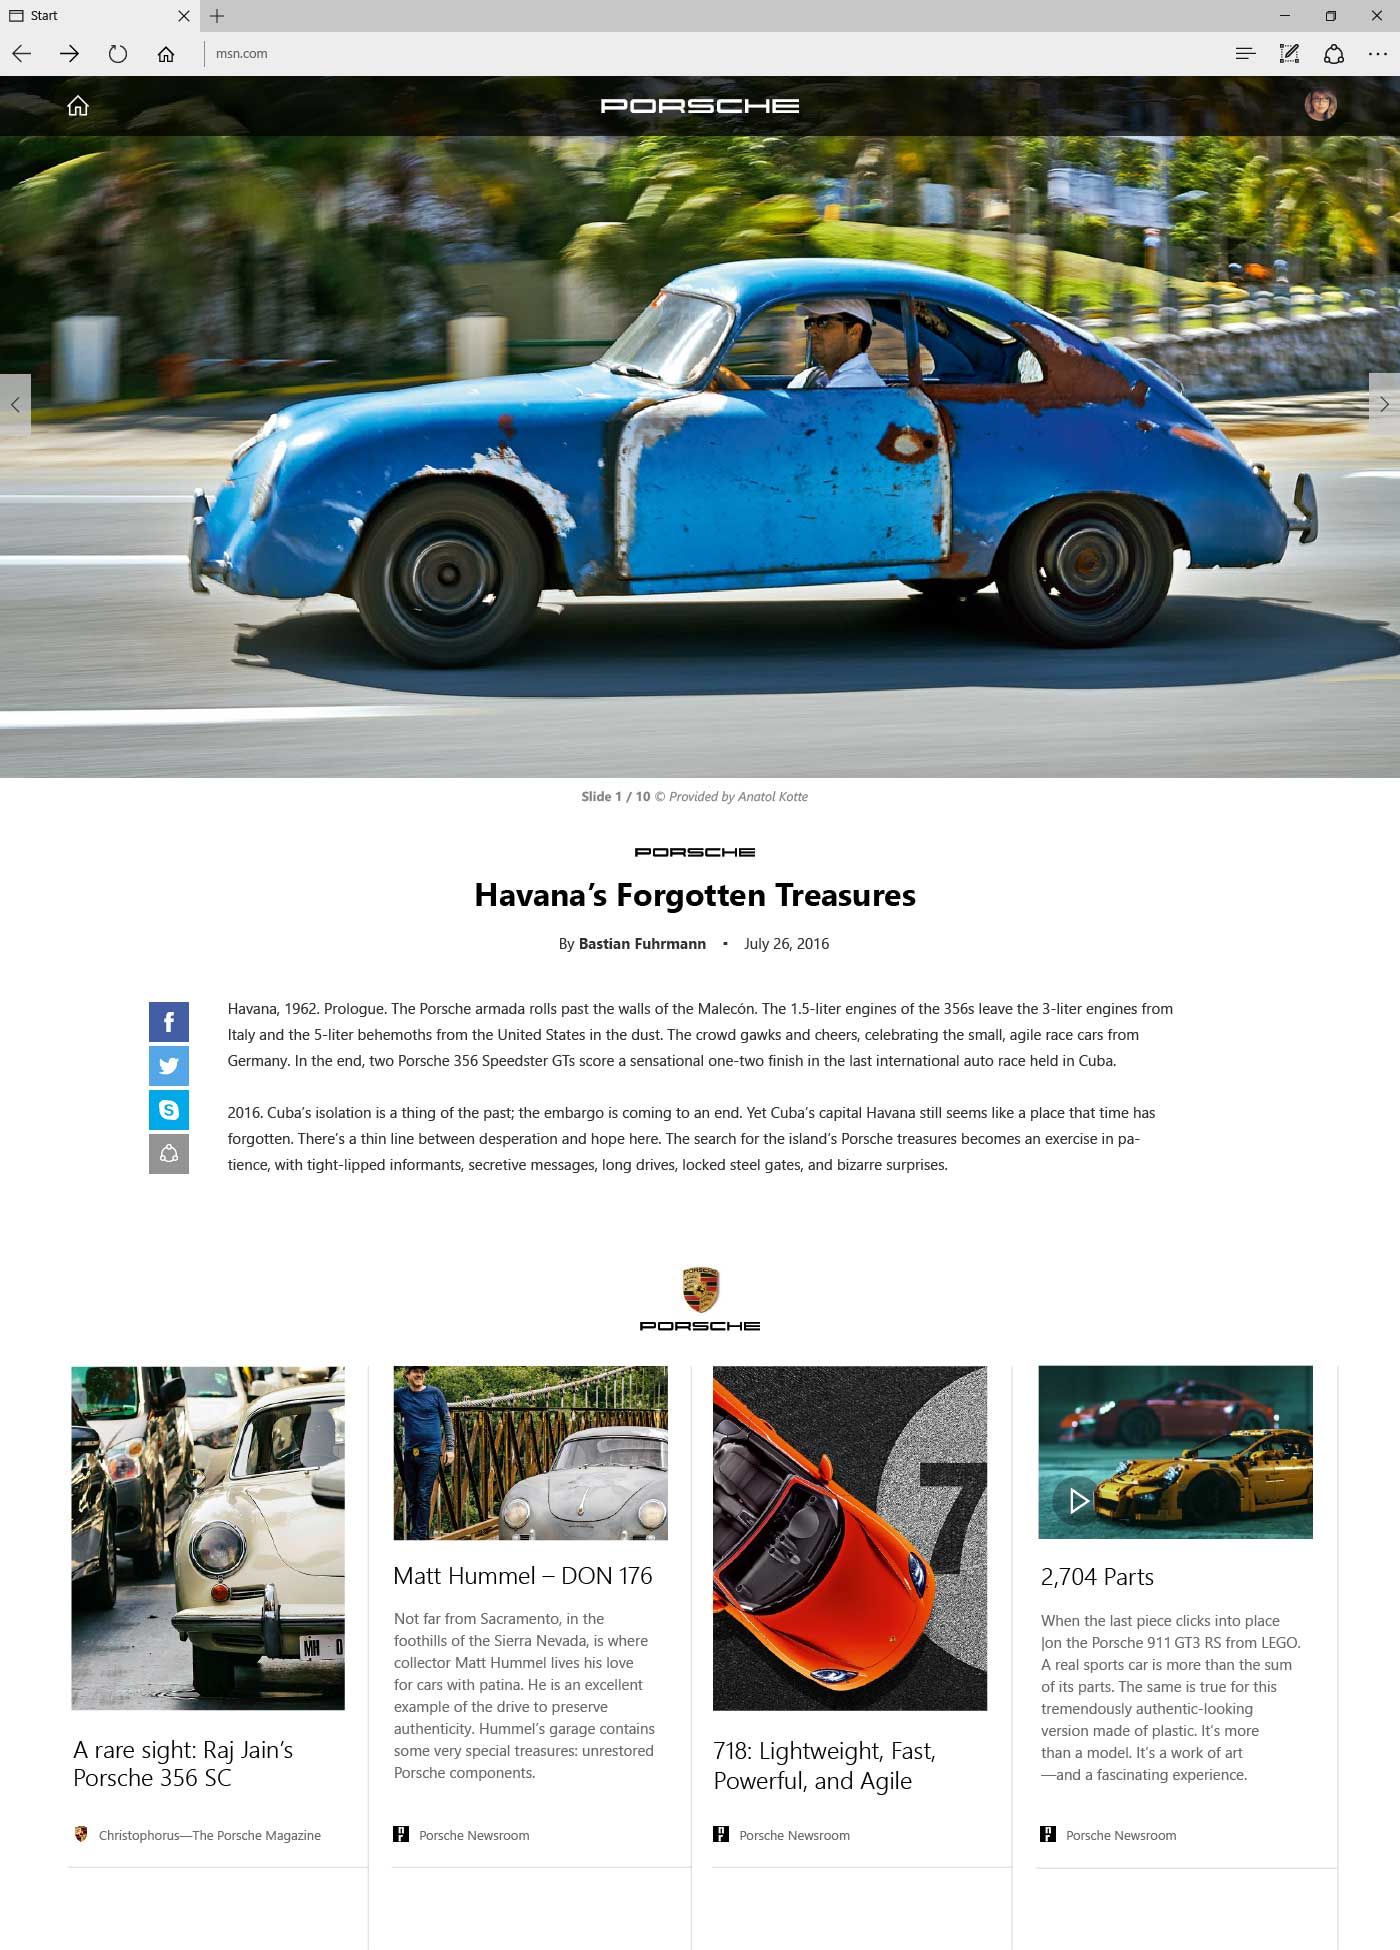 ms-porsche-slideshow